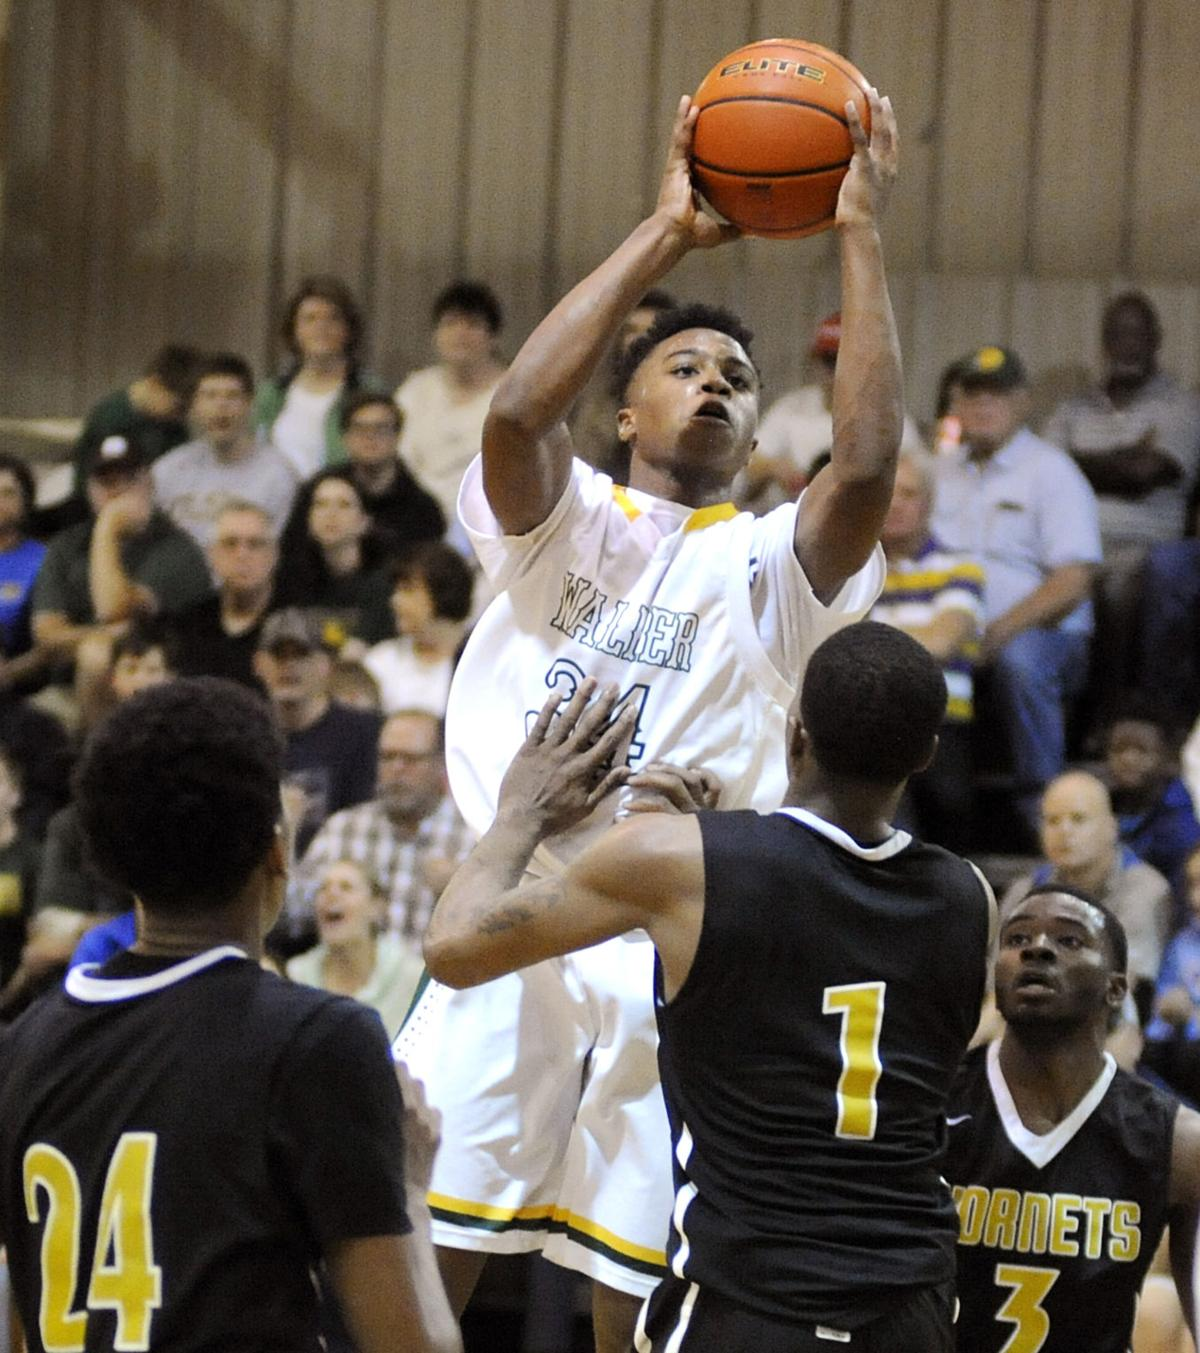 Check out the high school basketball tournament schedule ...